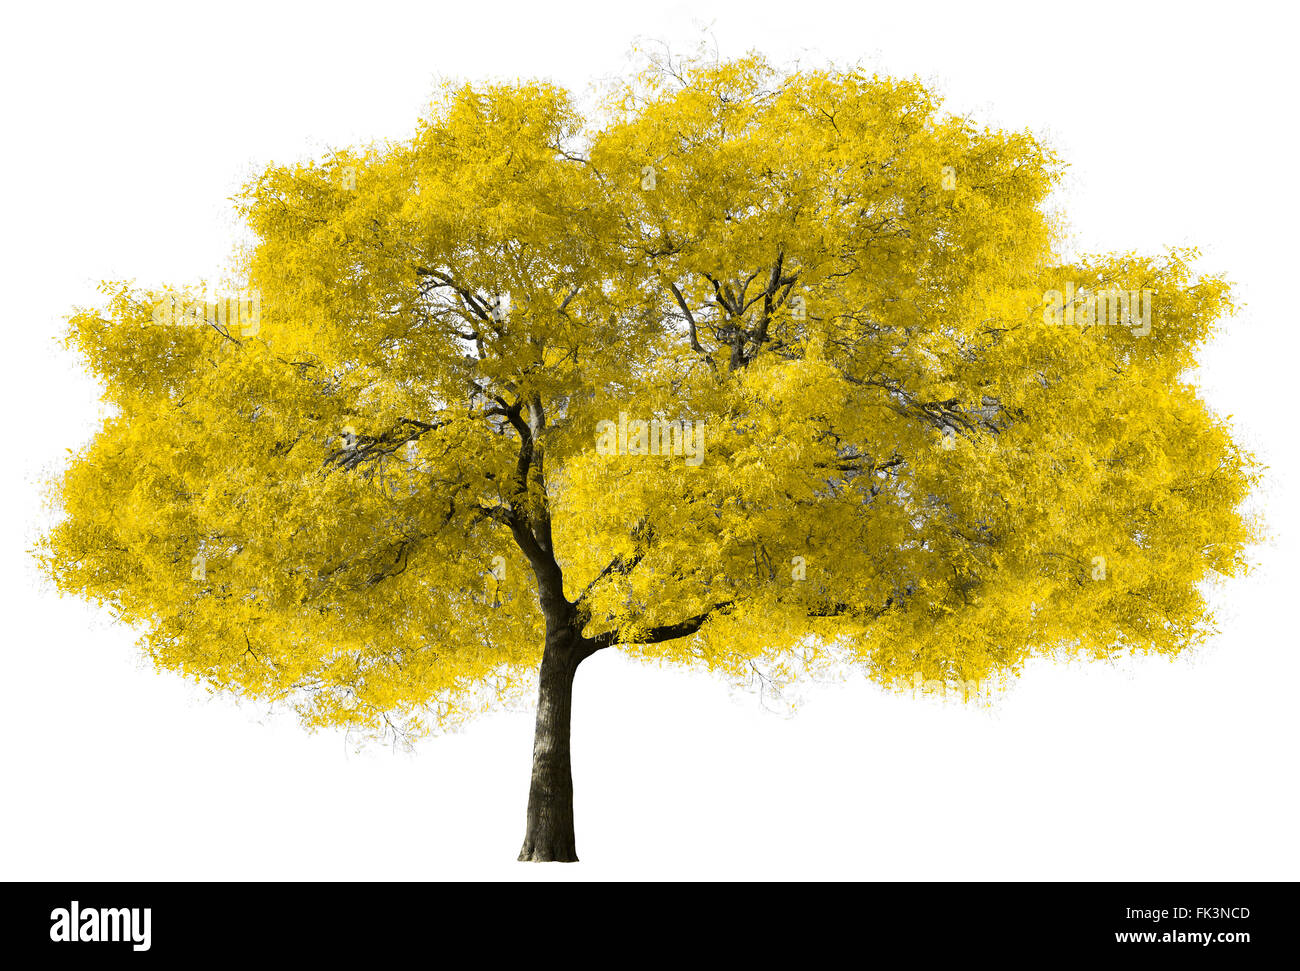 Grand arbre jaune isolé sur fond blanc Photo Stock